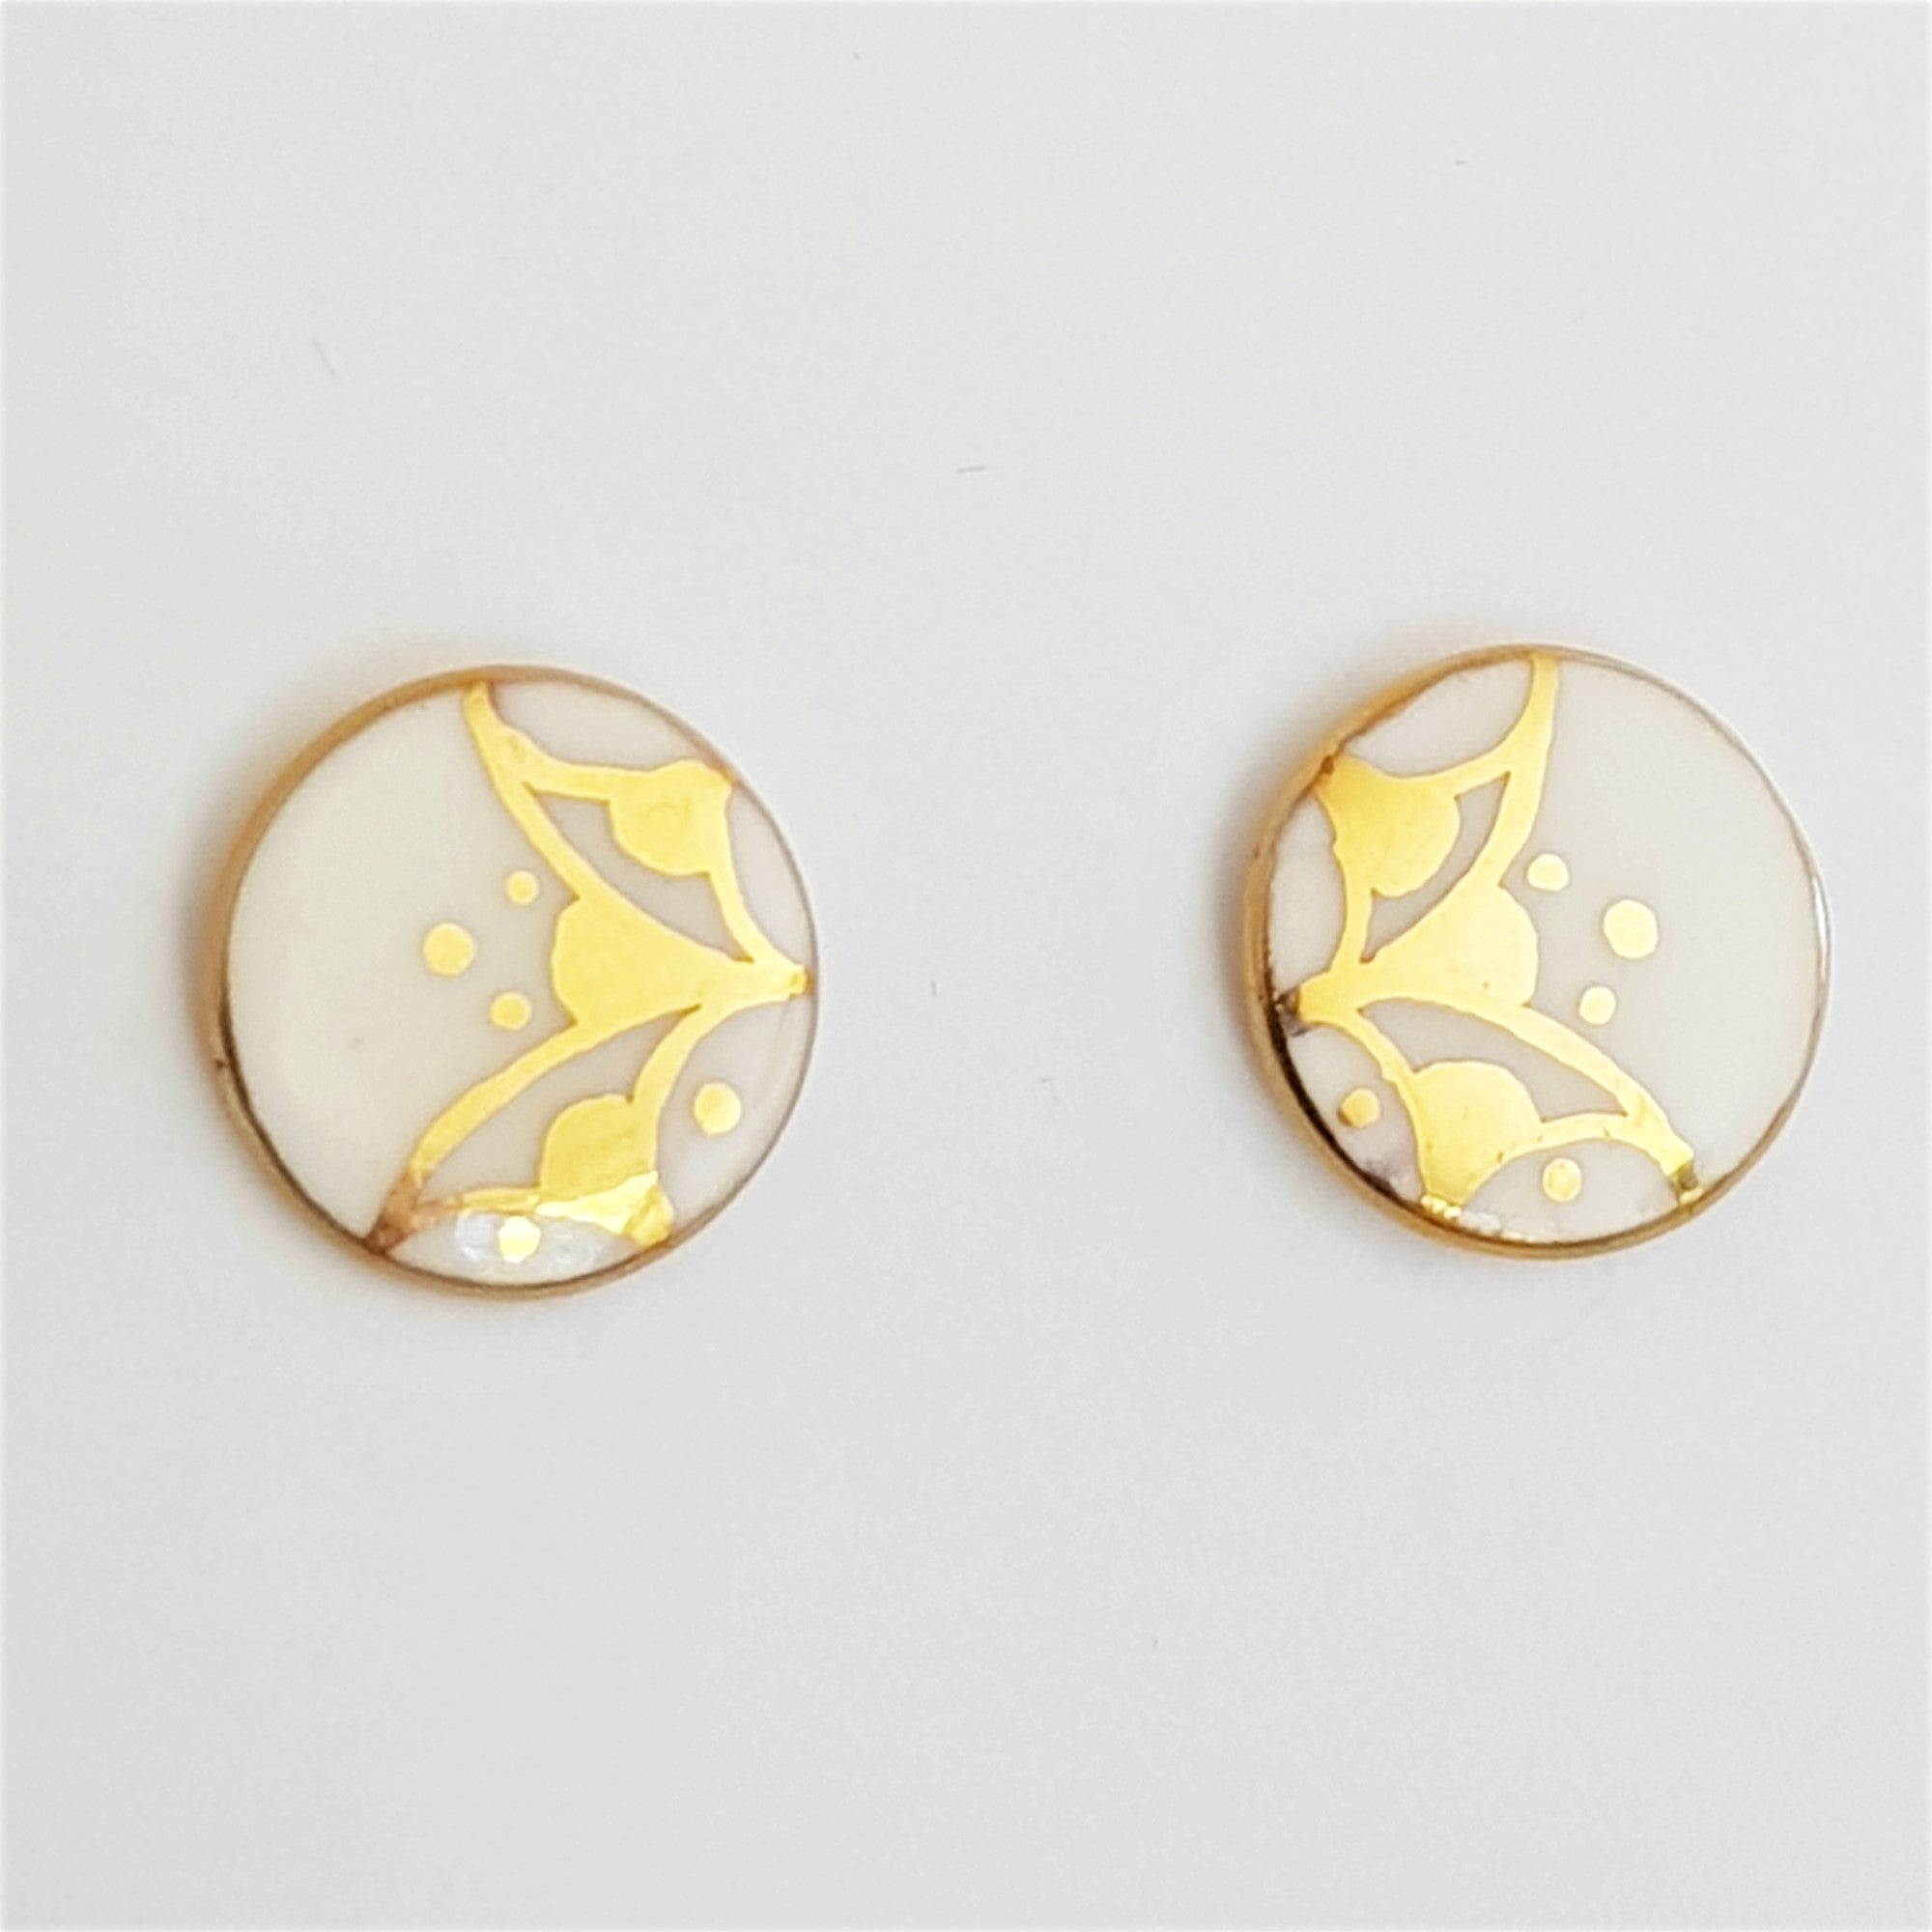 small white porcelain studs with gold design